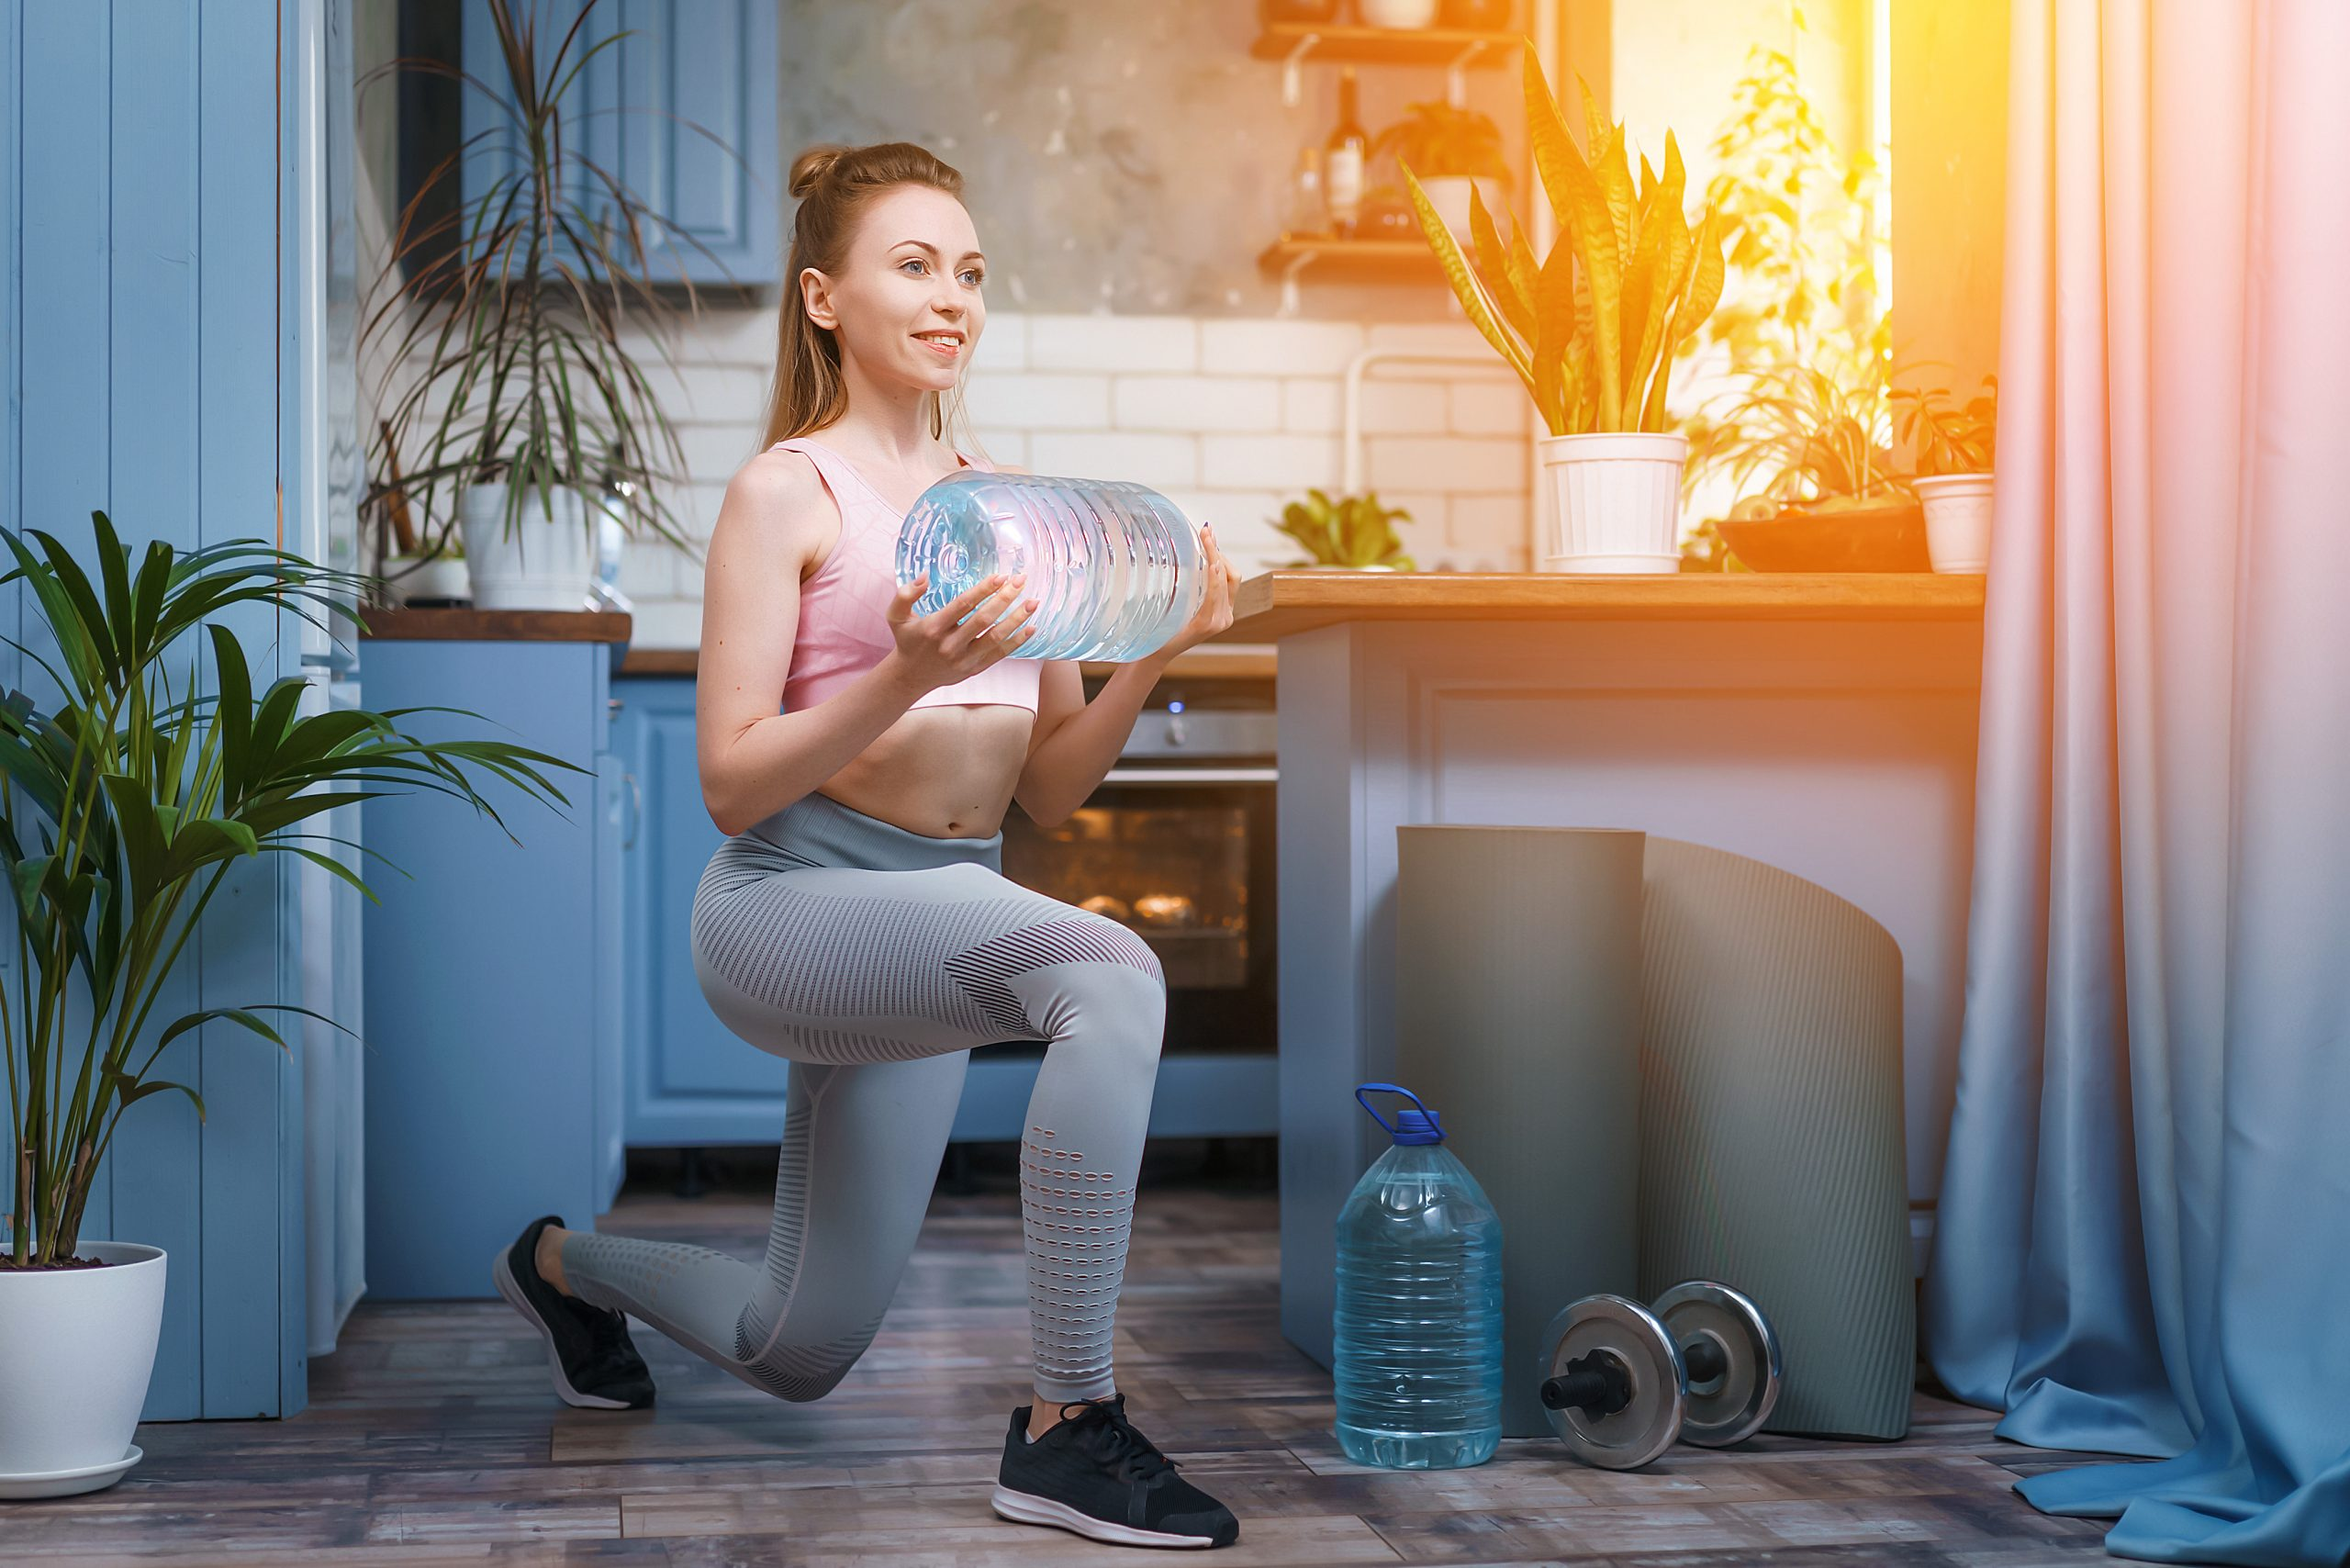 Expert Tips for Overcoming Barriers to Home Workouts